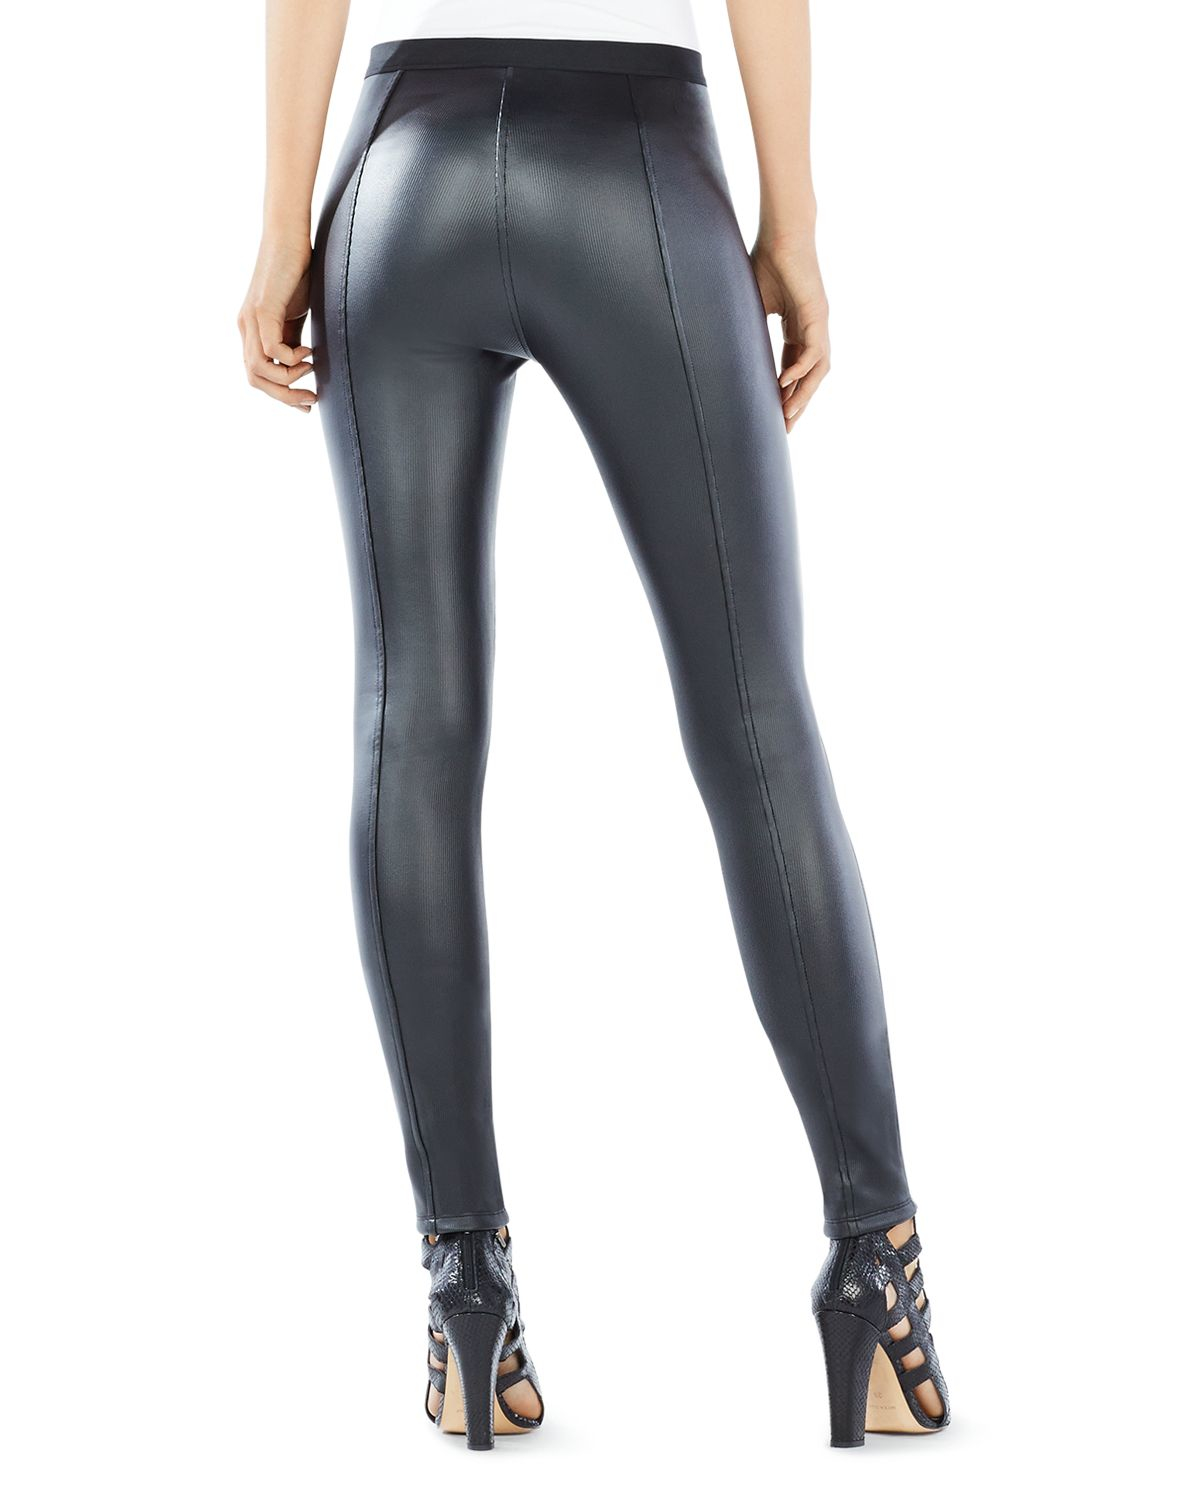 d1939e433ed36 BCBGMAXAZRIA Faux Leather Leggings in Black - Lyst